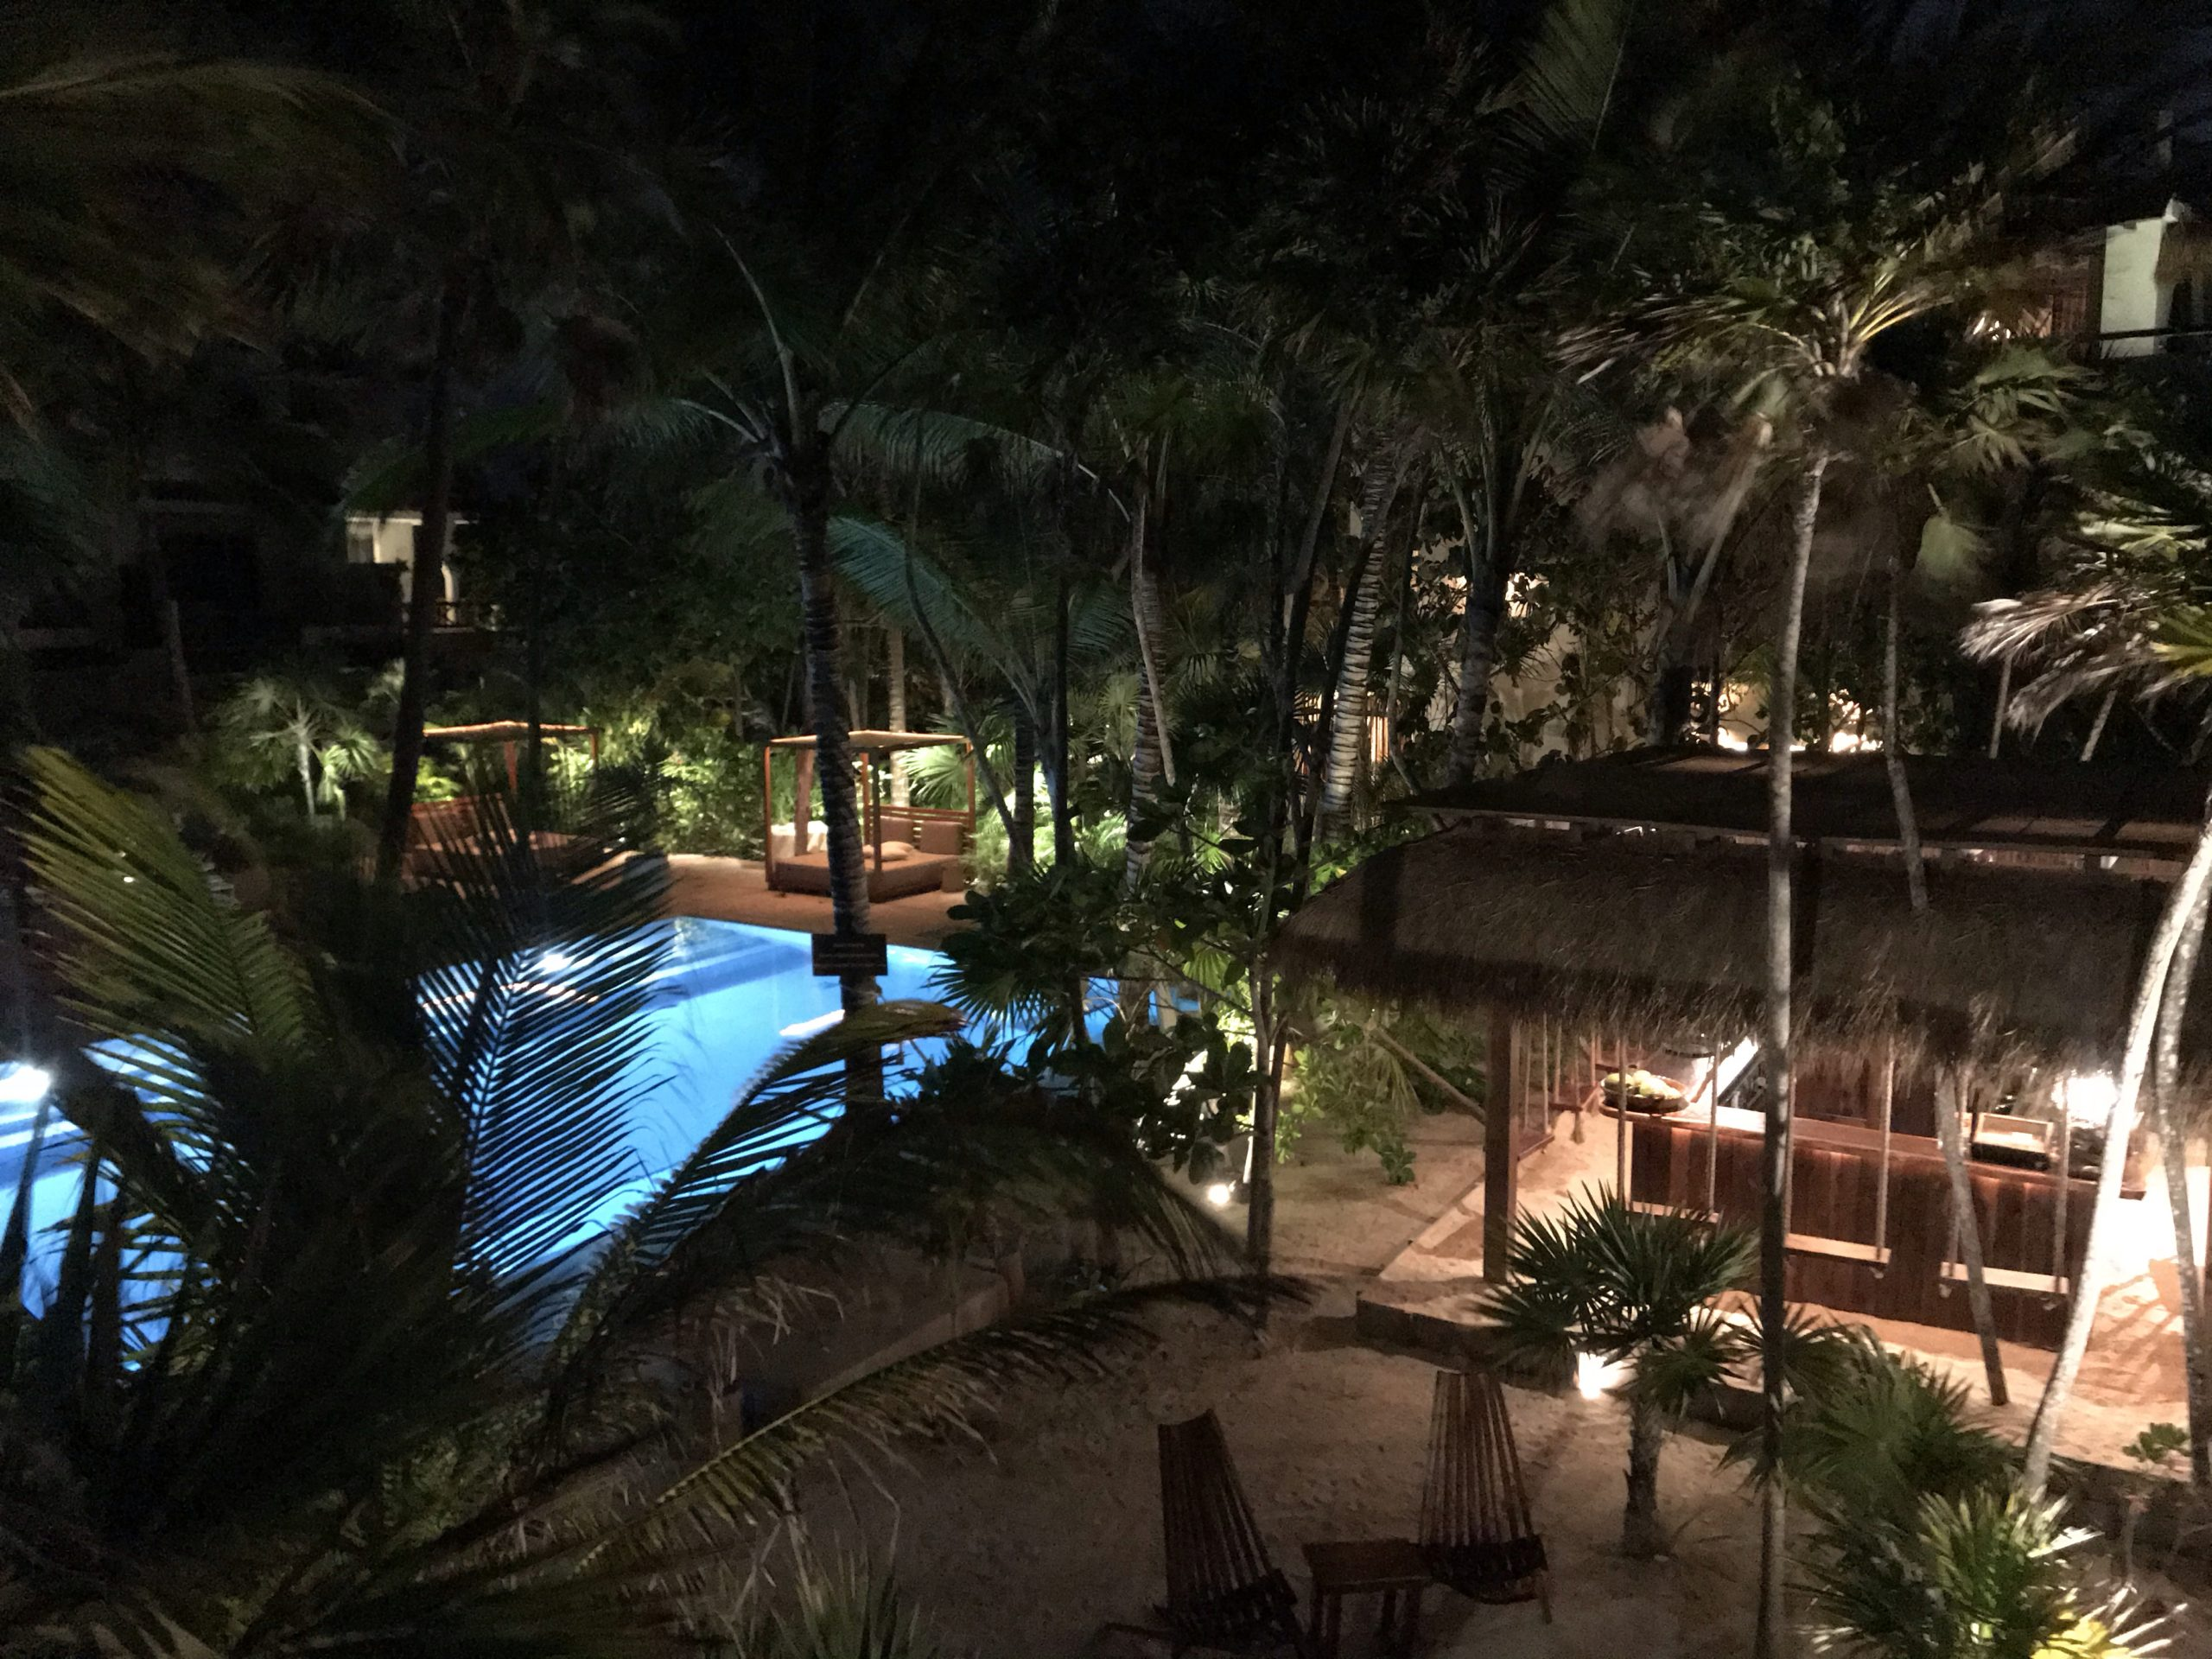 How to spend a day at Jashita Tulum